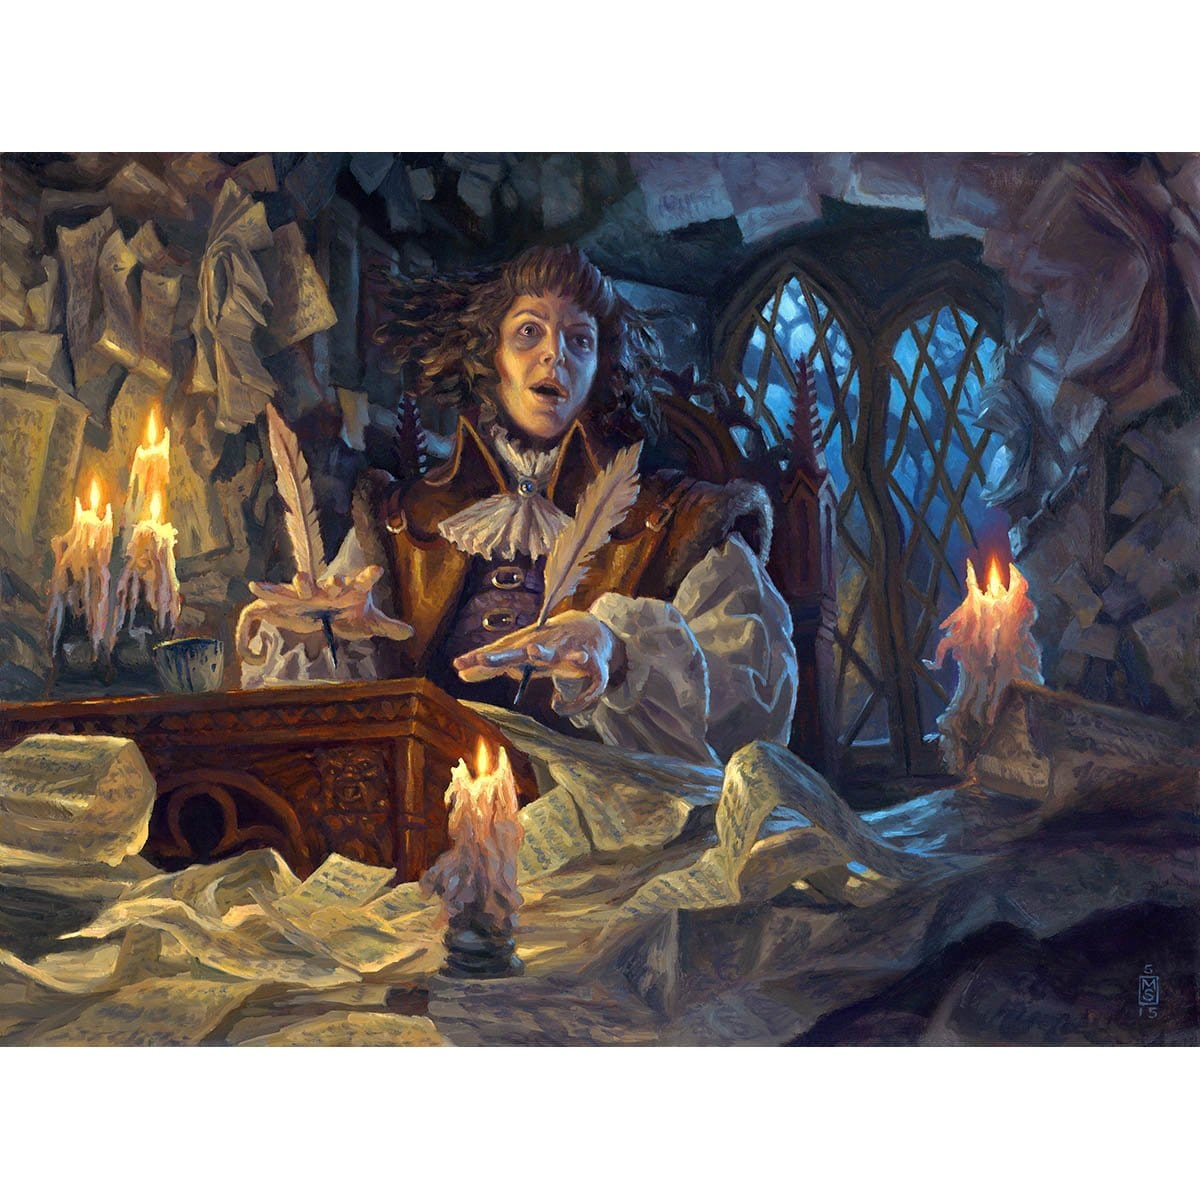 Manic Scribe Print - Print - Original Magic Art - Accessories for Magic the Gathering and other card games